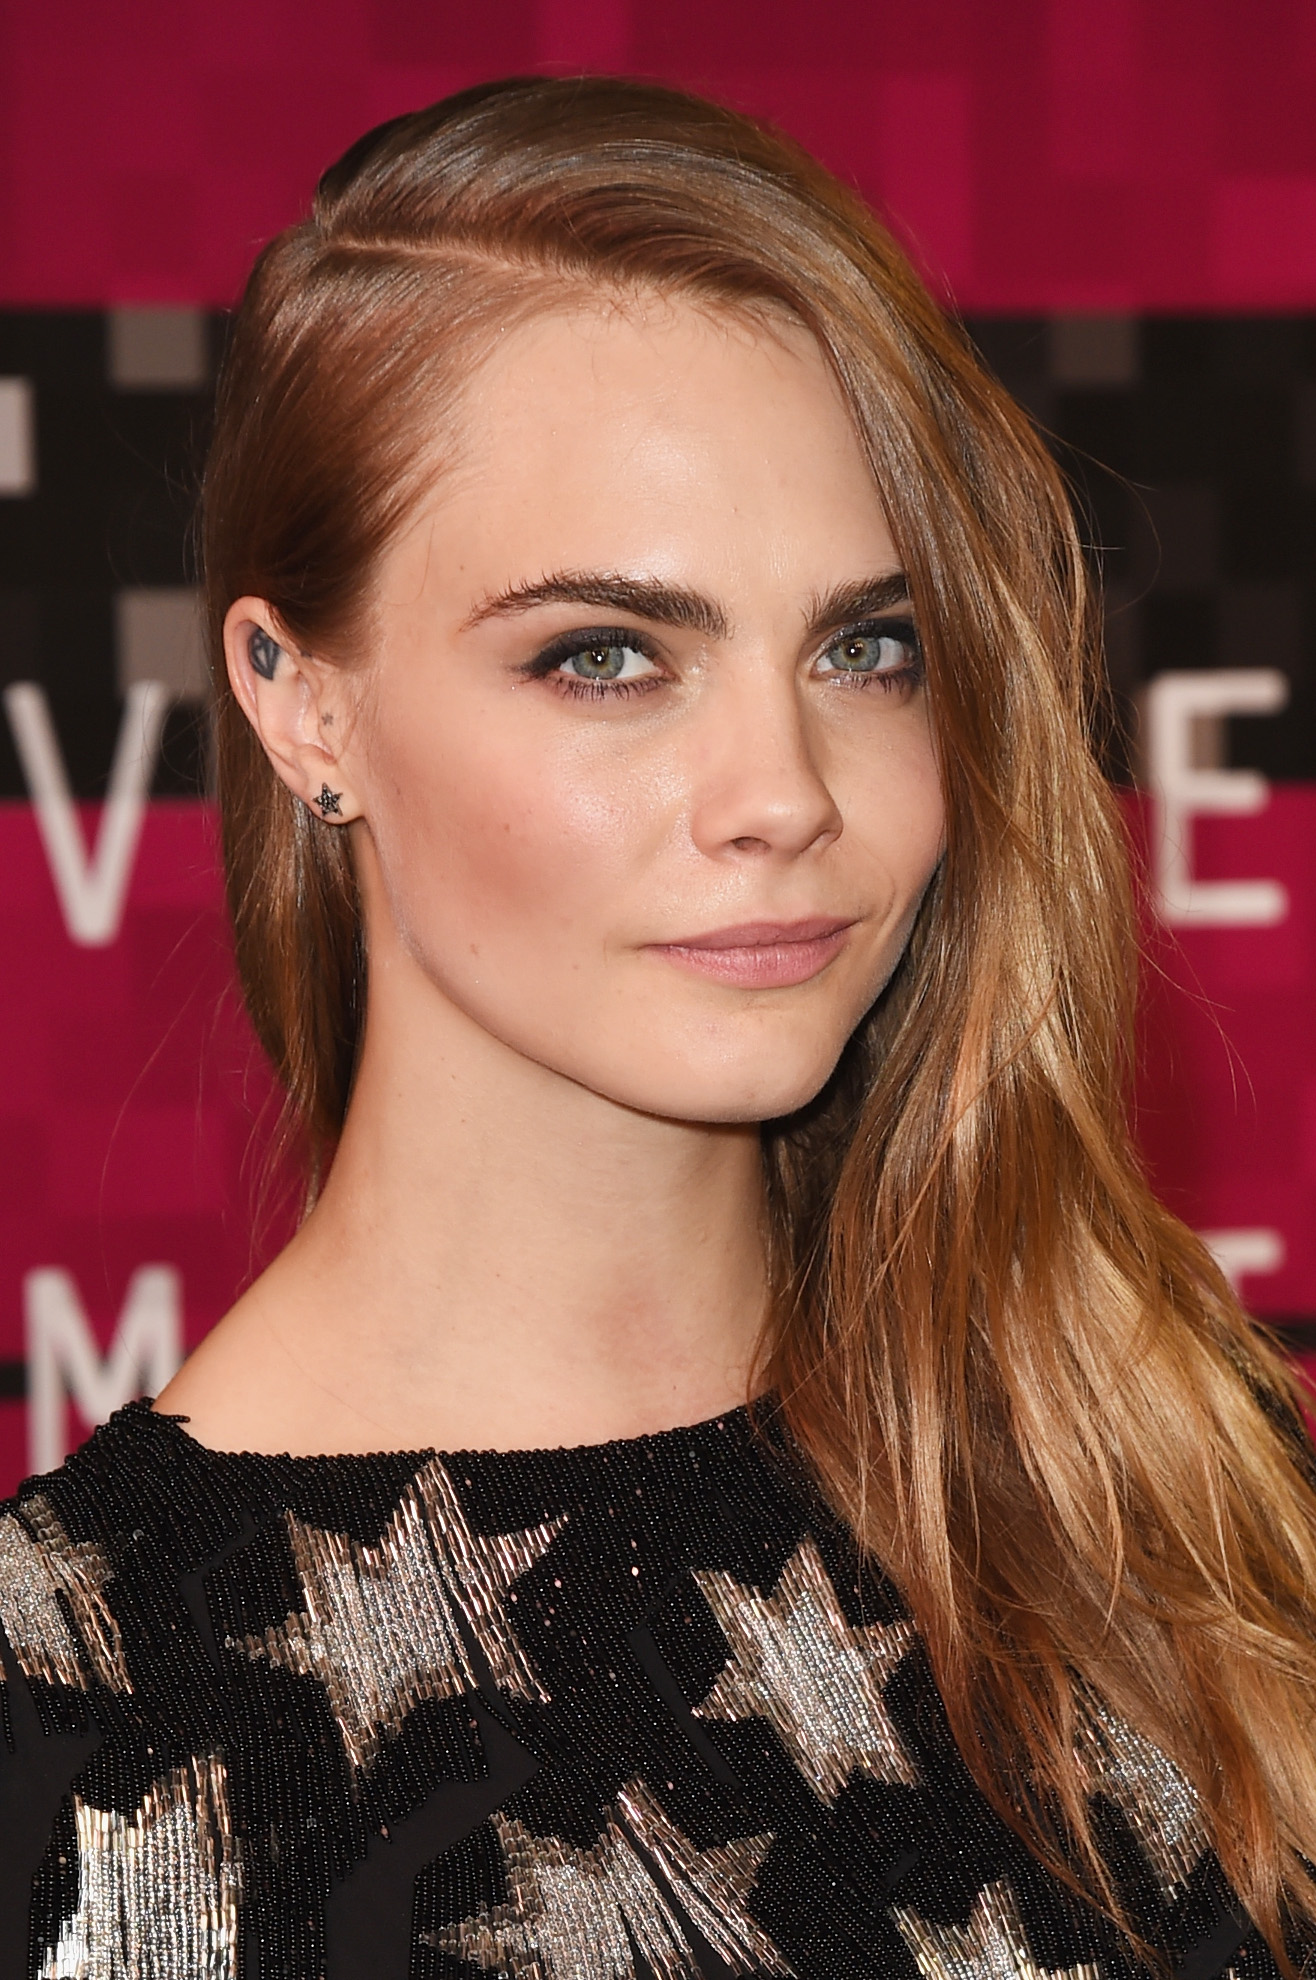 RIMMEL ANNOUNCES CARA DELEVINGNE AS NEW BRAND AMBASSADOR